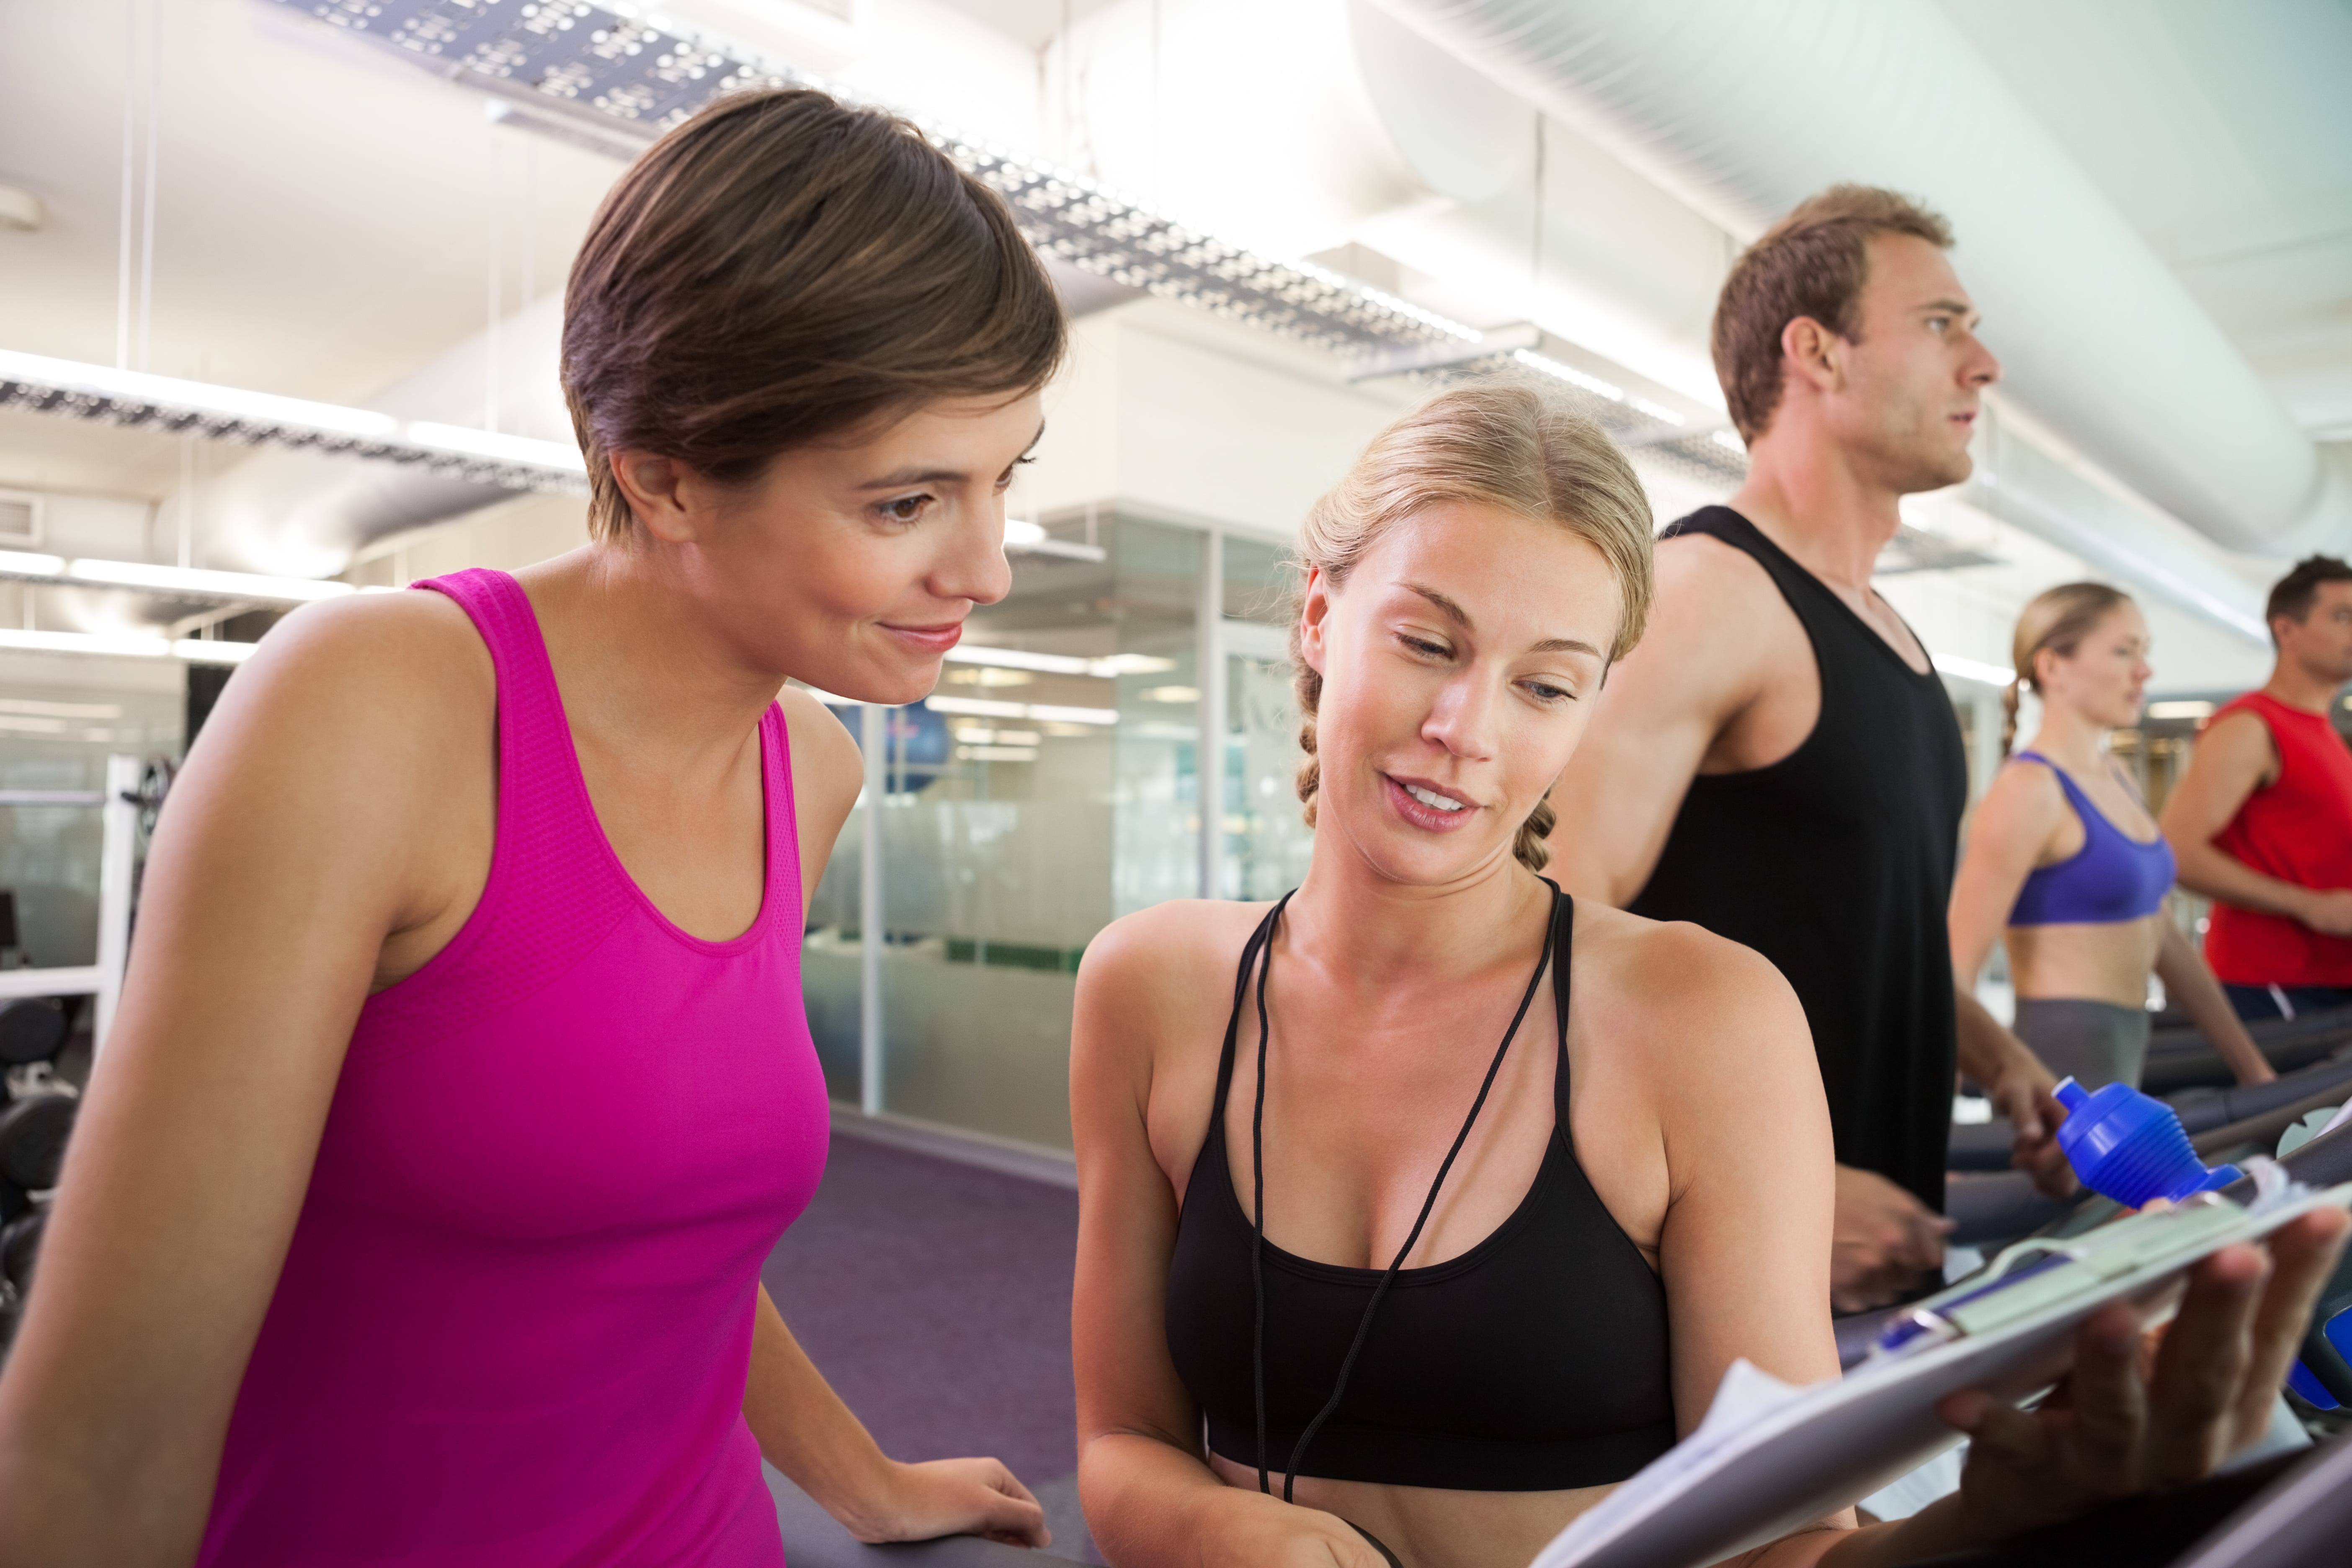 Personal trainer giving advice to client